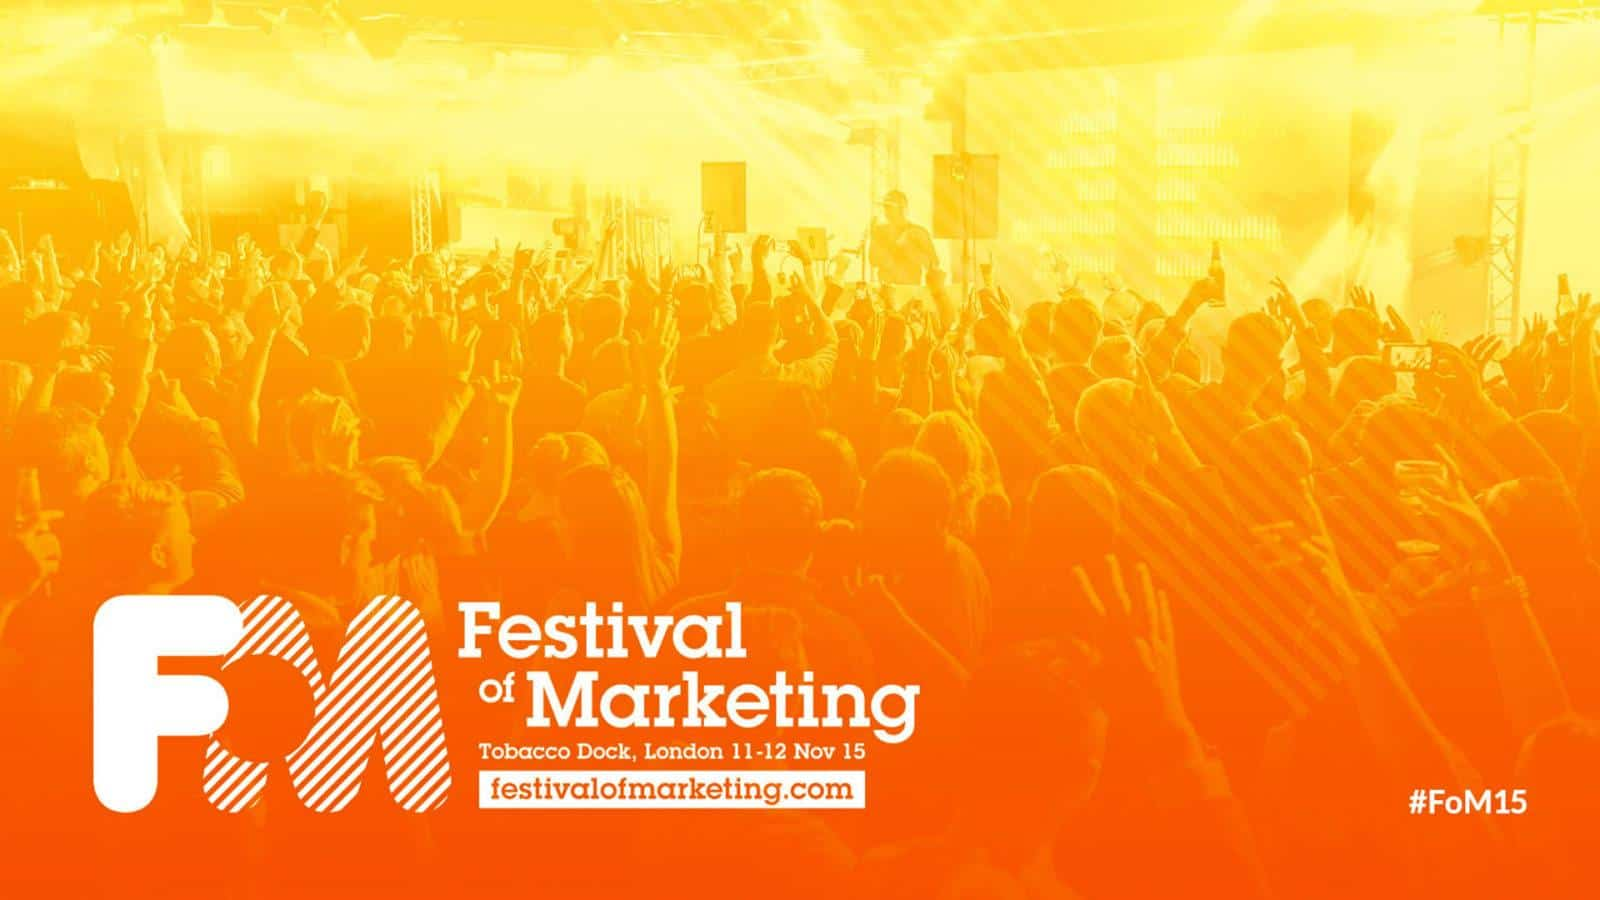 Festival of Marketing brand creation